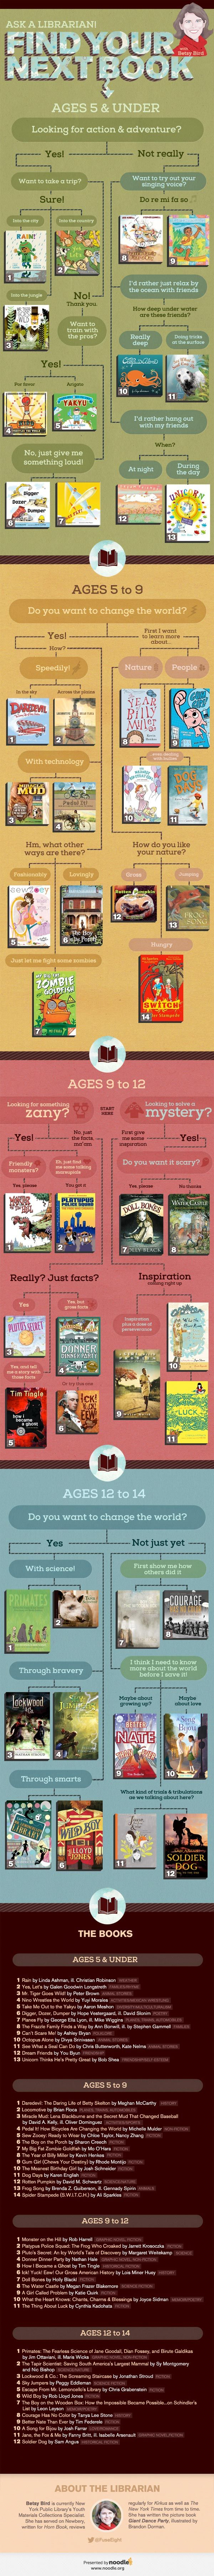 Find your next book Ages 0-14 Recommendations from NYPL children's collections specialist Betsy Bird #TeachNYPL #ReadingLibraries Ideas, Book Lists, Reading, Book For Kids, Child Infographic, Public Libraries, Children Books, Children Librarians, Books For Kids